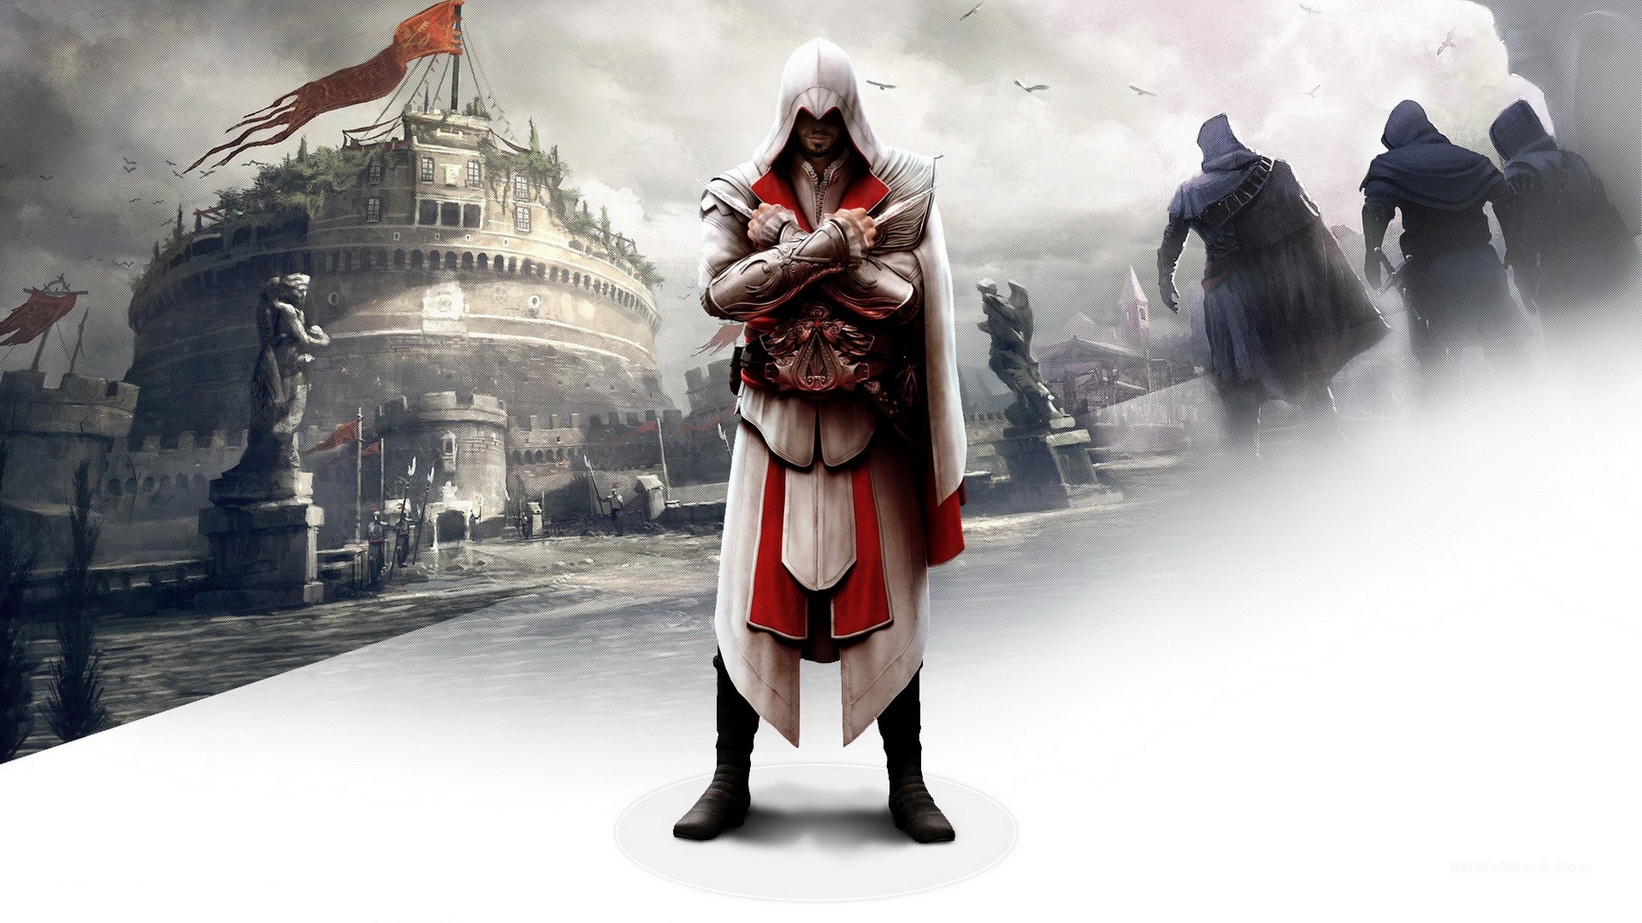 Assassins Creed Backgrounds Hd Wallpapers Hd Backgrounds Tumblr Backgrounds Images Pictures